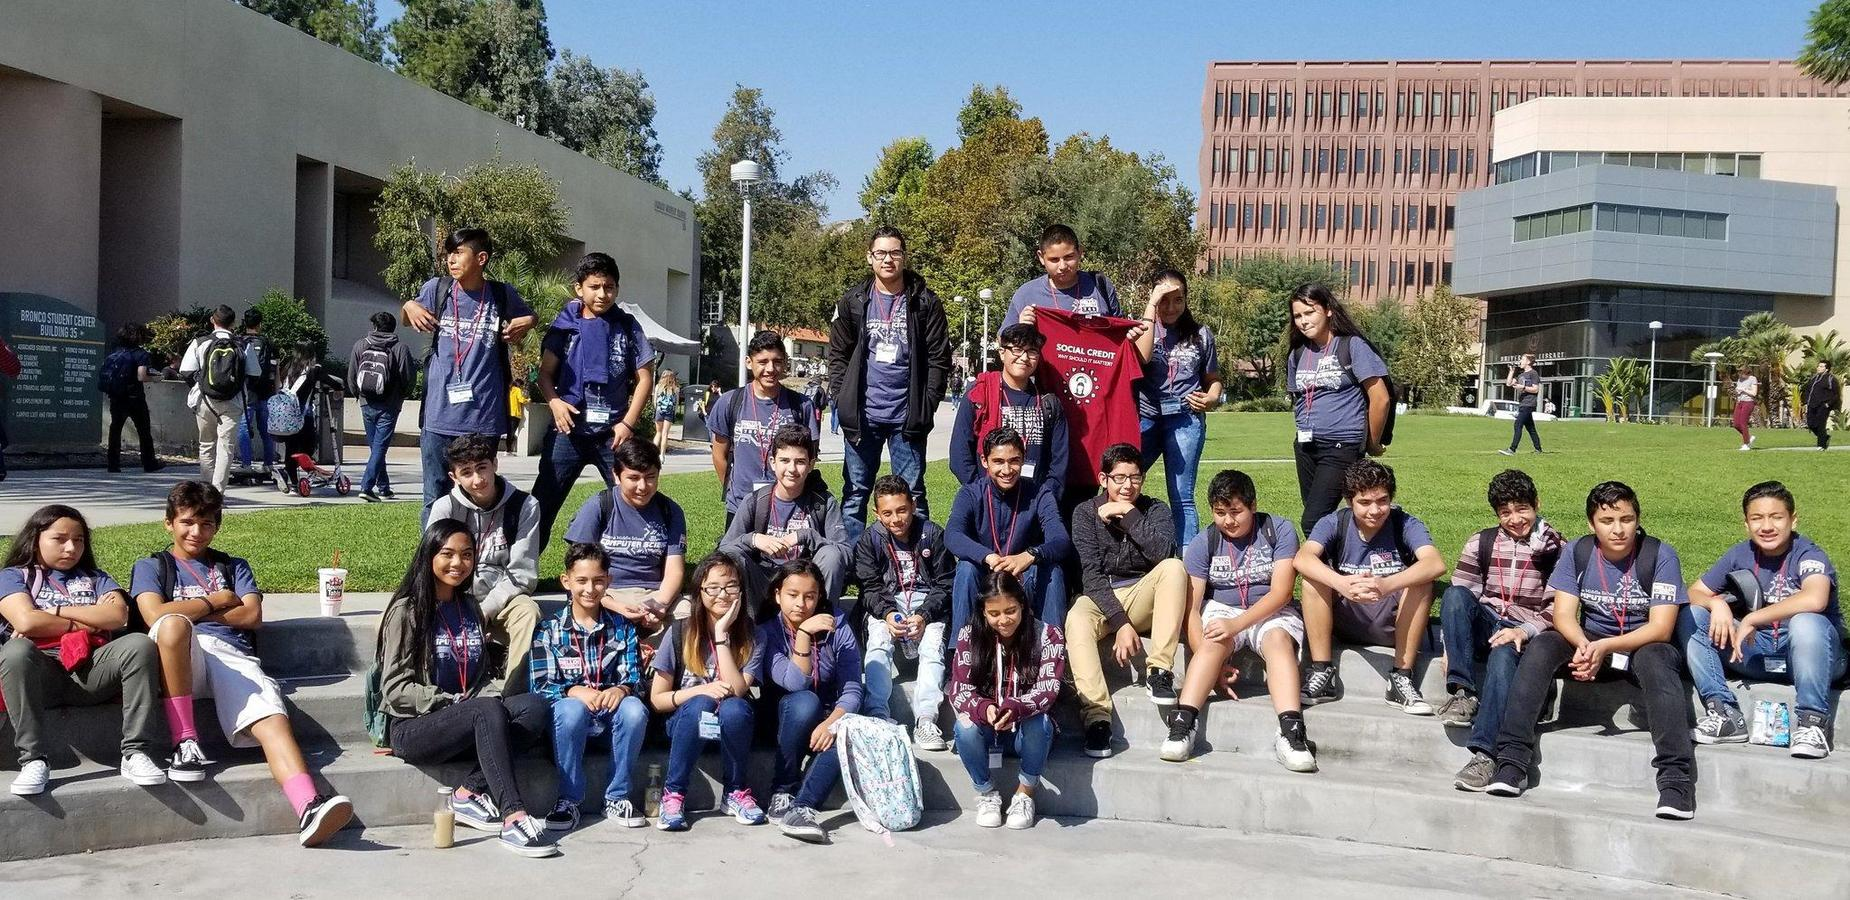 Simons is making sure our students secure their future! Thank you Cal Poly Pomona for hosting the @cppcyfair and a big THANK YOU to @CSwithRamirez, she was instrumental in guiding our scholars at this awesome event! #proud2bepusd http://edl.io/n1121120